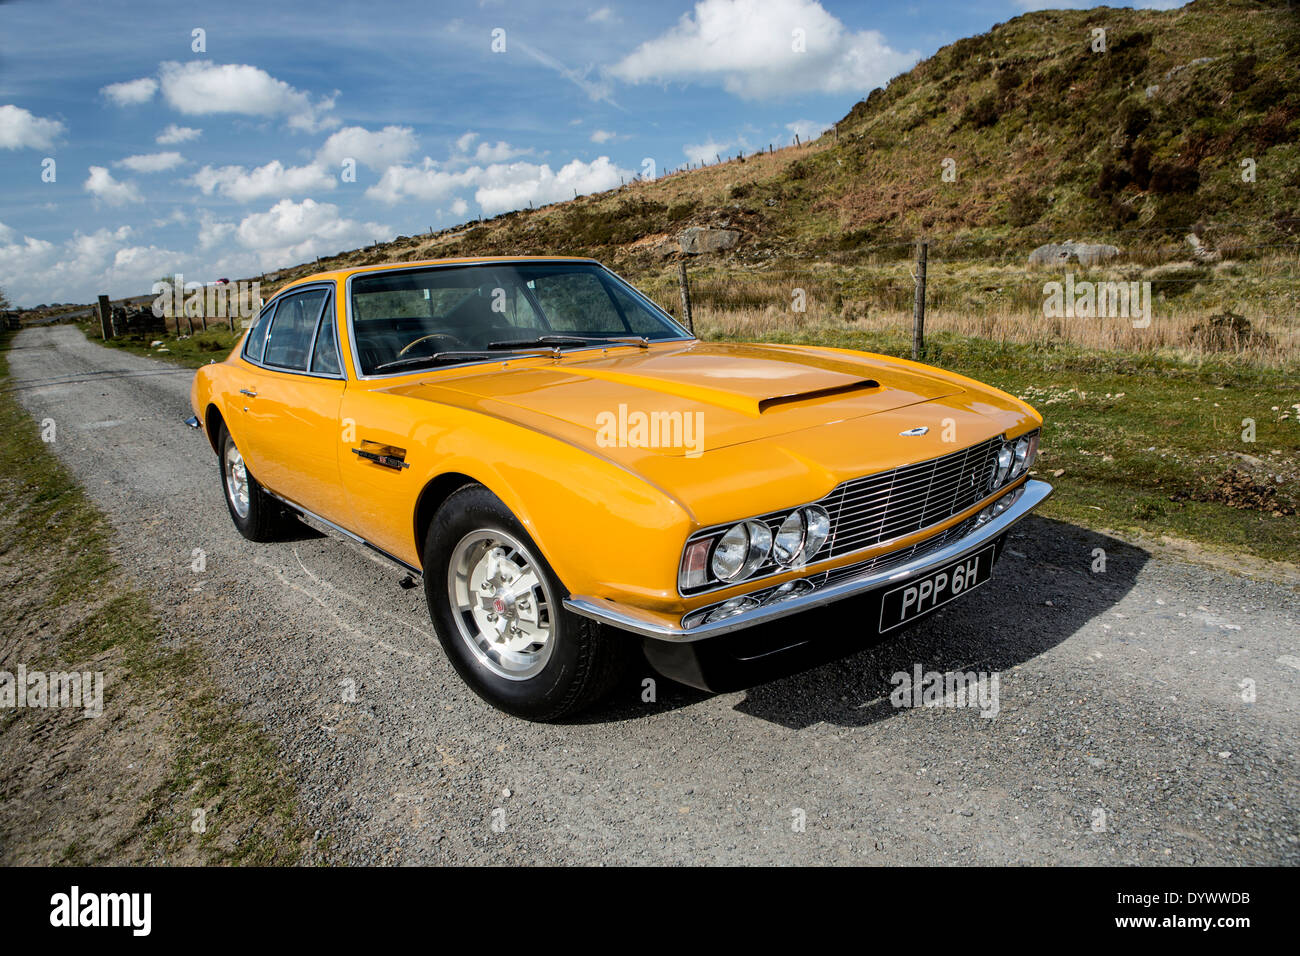 Roger Moores Yellow 1971 Aston Martin Dbs From The Tv Show The Stock Photo Alamy